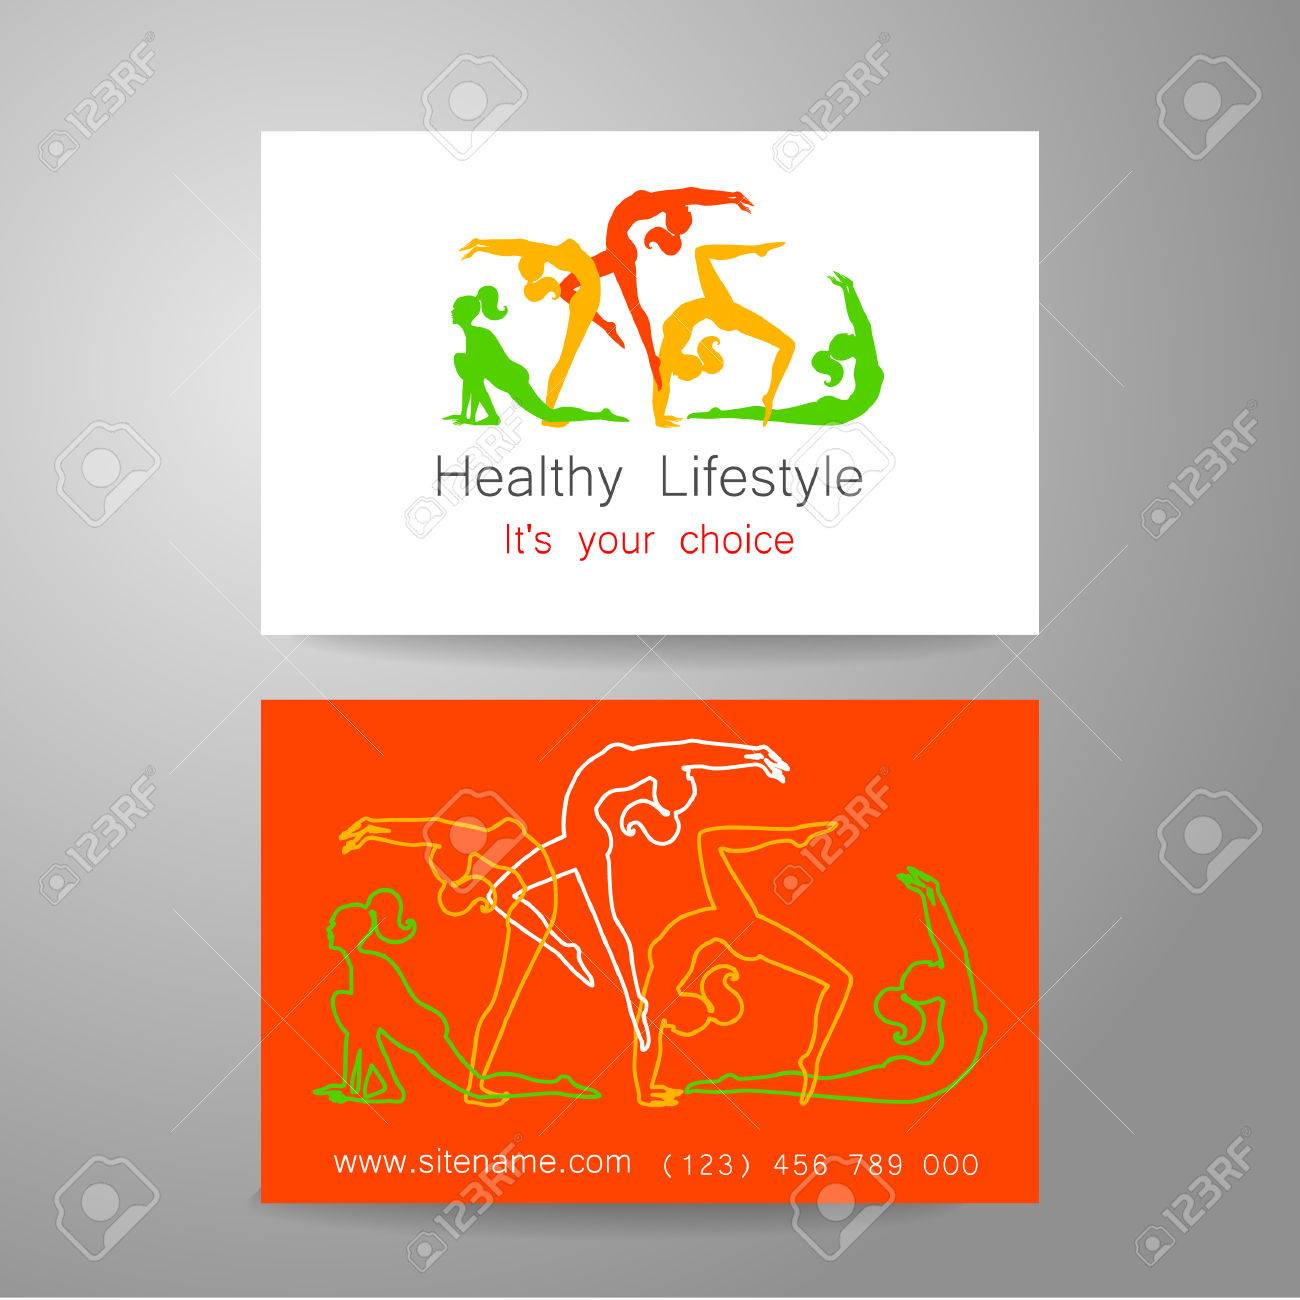 Fitness logo corporate design template business card sports corporate design template business card sports club fitness center beauty salon reheart Image collections